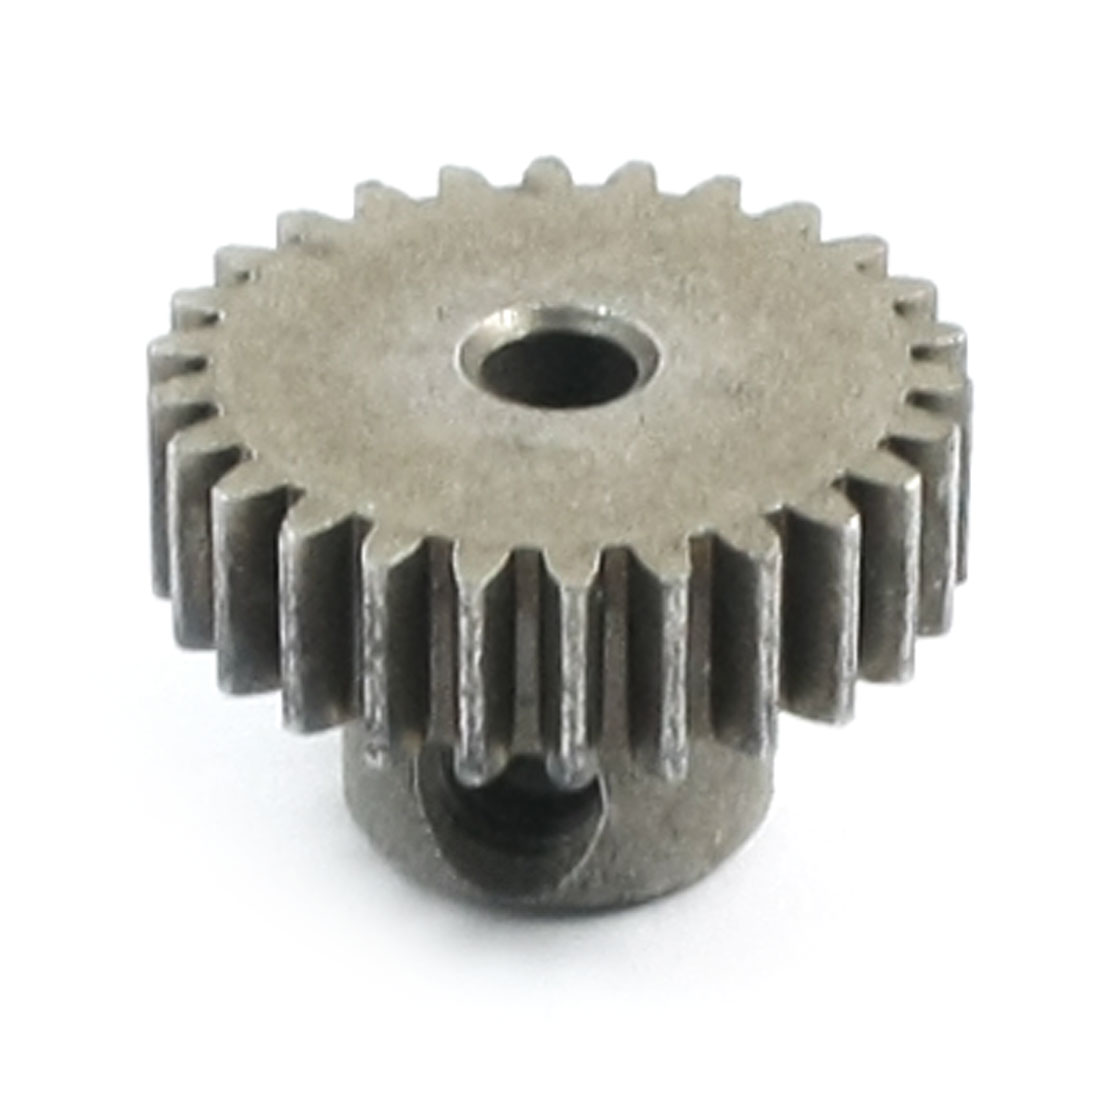 11176 Motor Steel Gear 26T 11 x 17mm for RC 1/10 Off-Road Buggy Truck